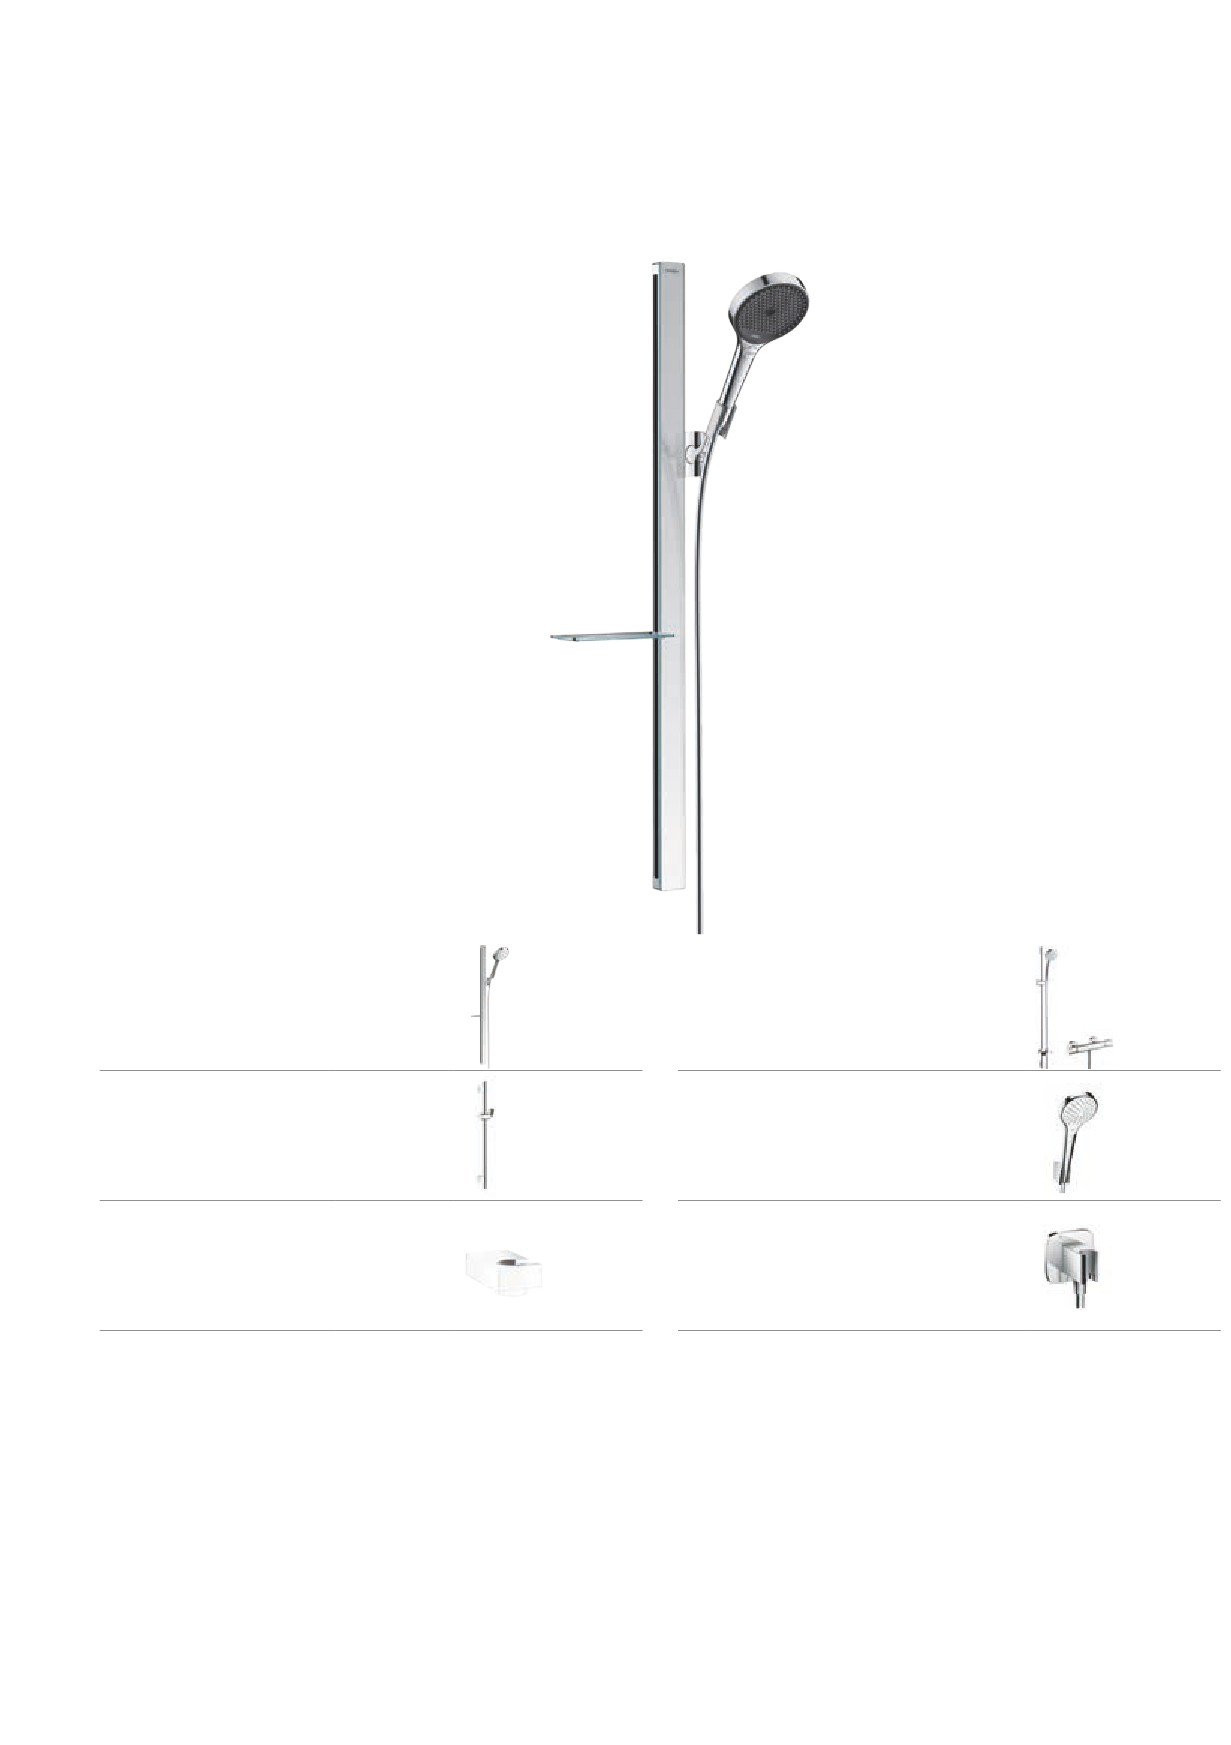 Picture of: Hansgrohe Puravida Unica 28694000 Corner Fitting Set For Raindance Unica S And Light Grey Bathtub Faucet Replacement Parts